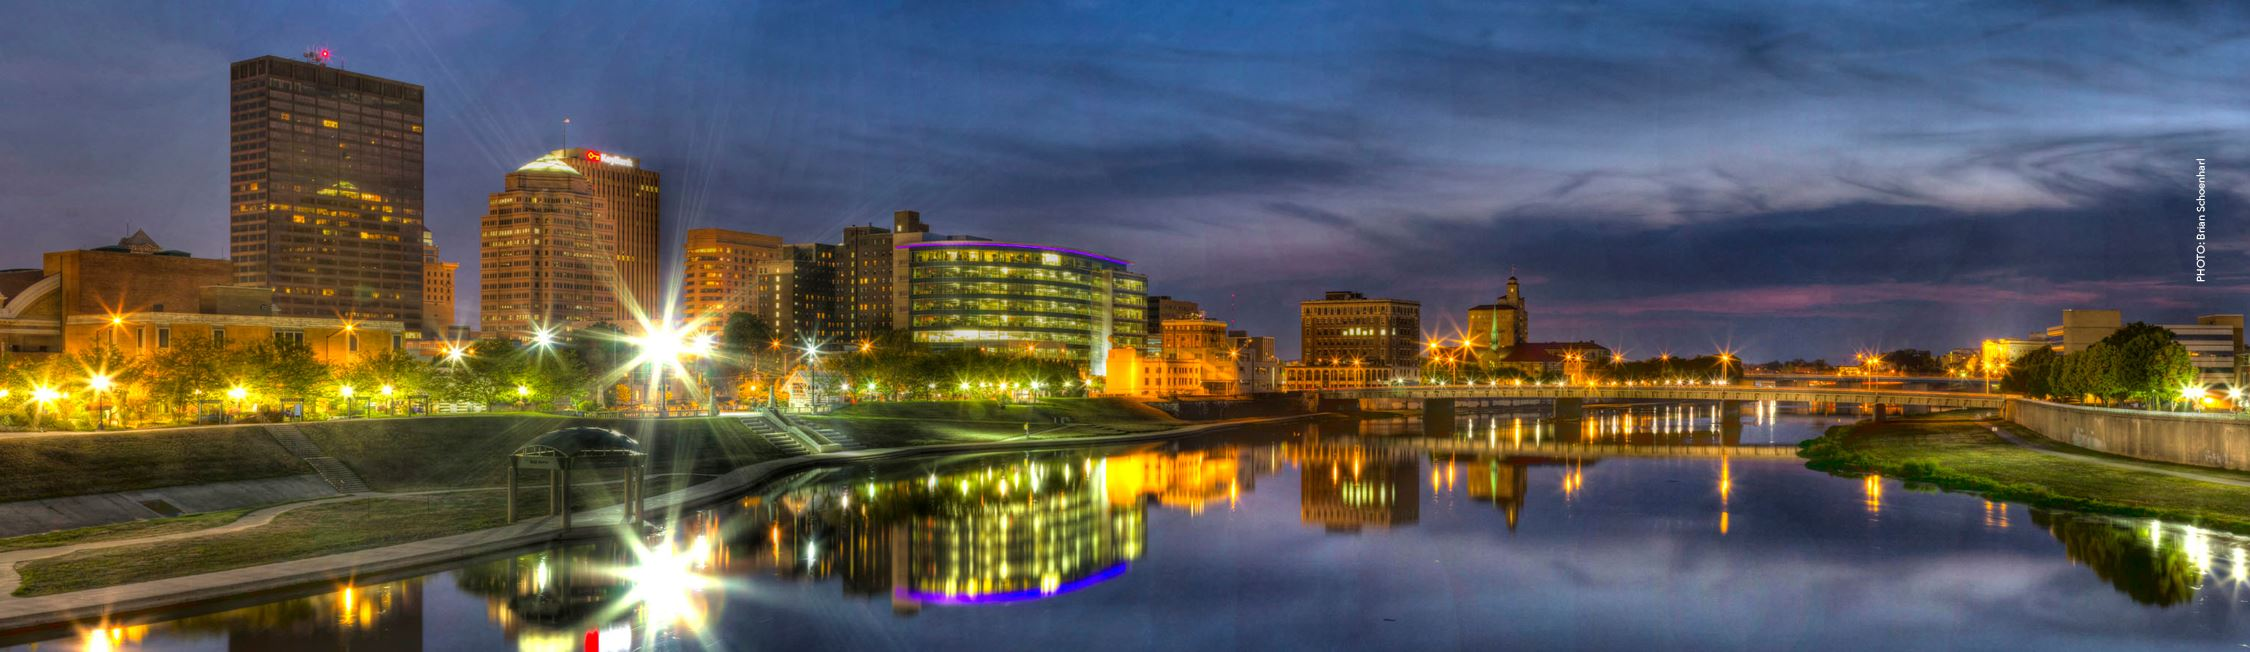 City of Dayton, Ohio Skyline